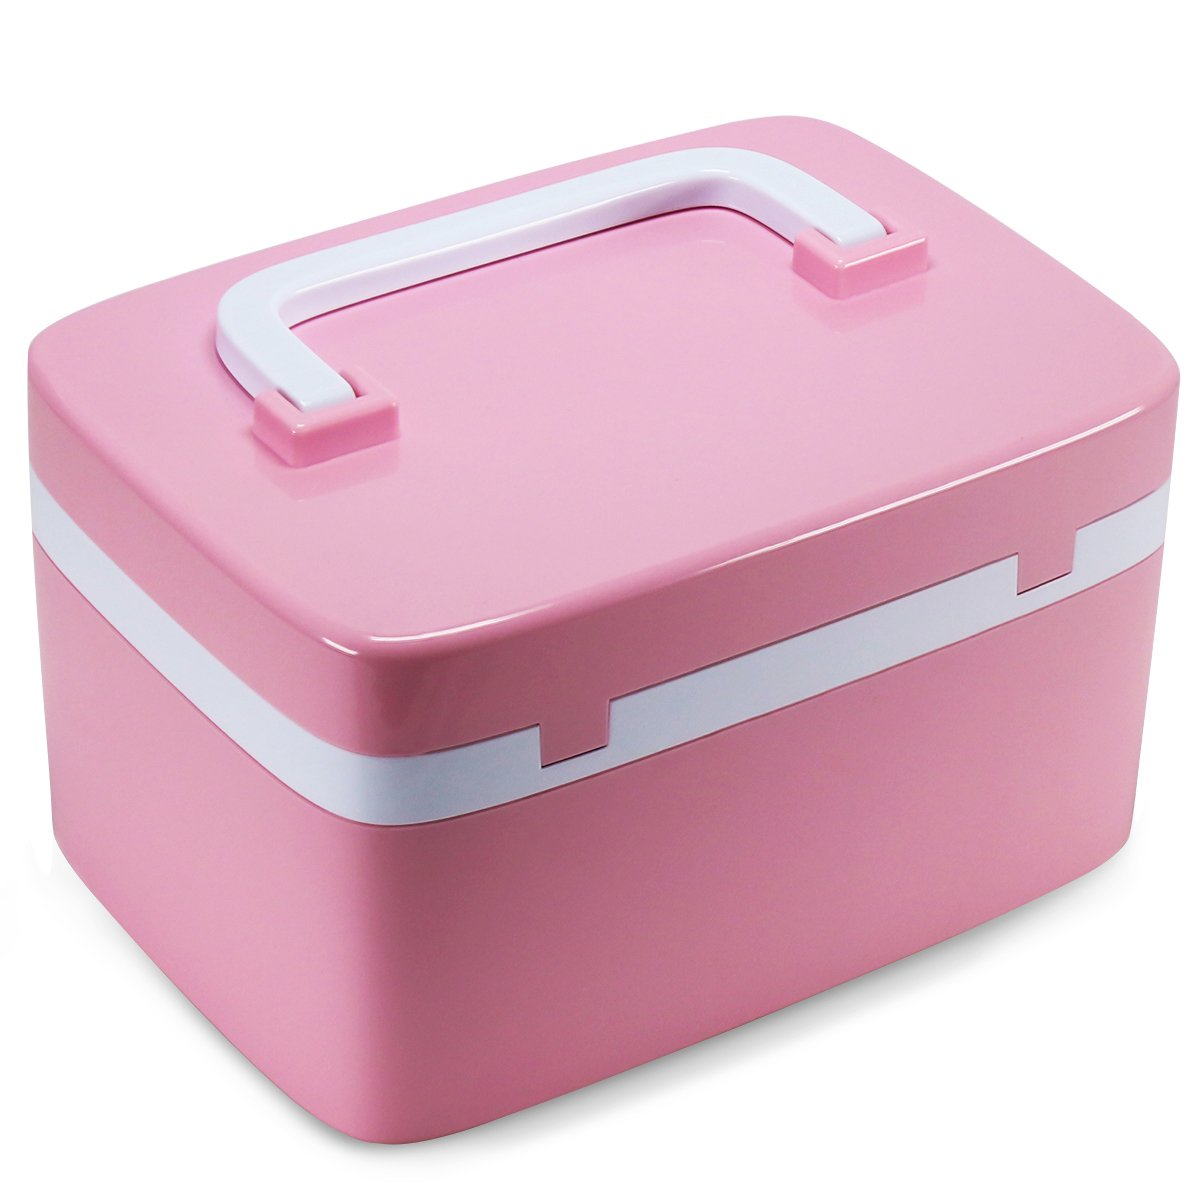 EVERTOP Professional ABS Large Combination Lock Cosmetic Organiser, Makeup Storage Container Travel Beauty Box with 7 Compartment, Pink